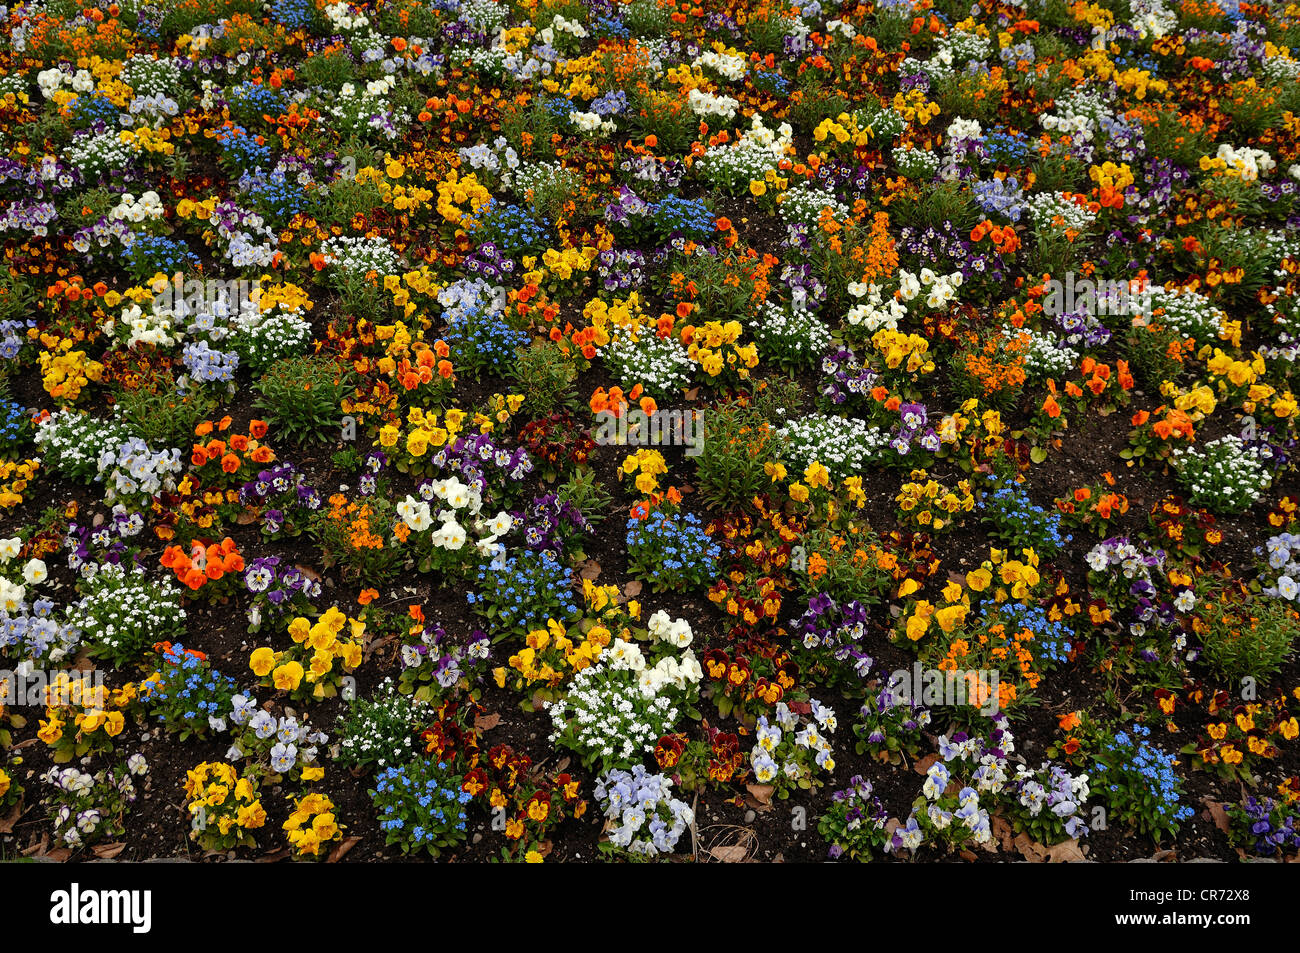 Colourful vegetation with various flowers in a park in Marckolsheim, Alsace, France, Europe - Stock Image